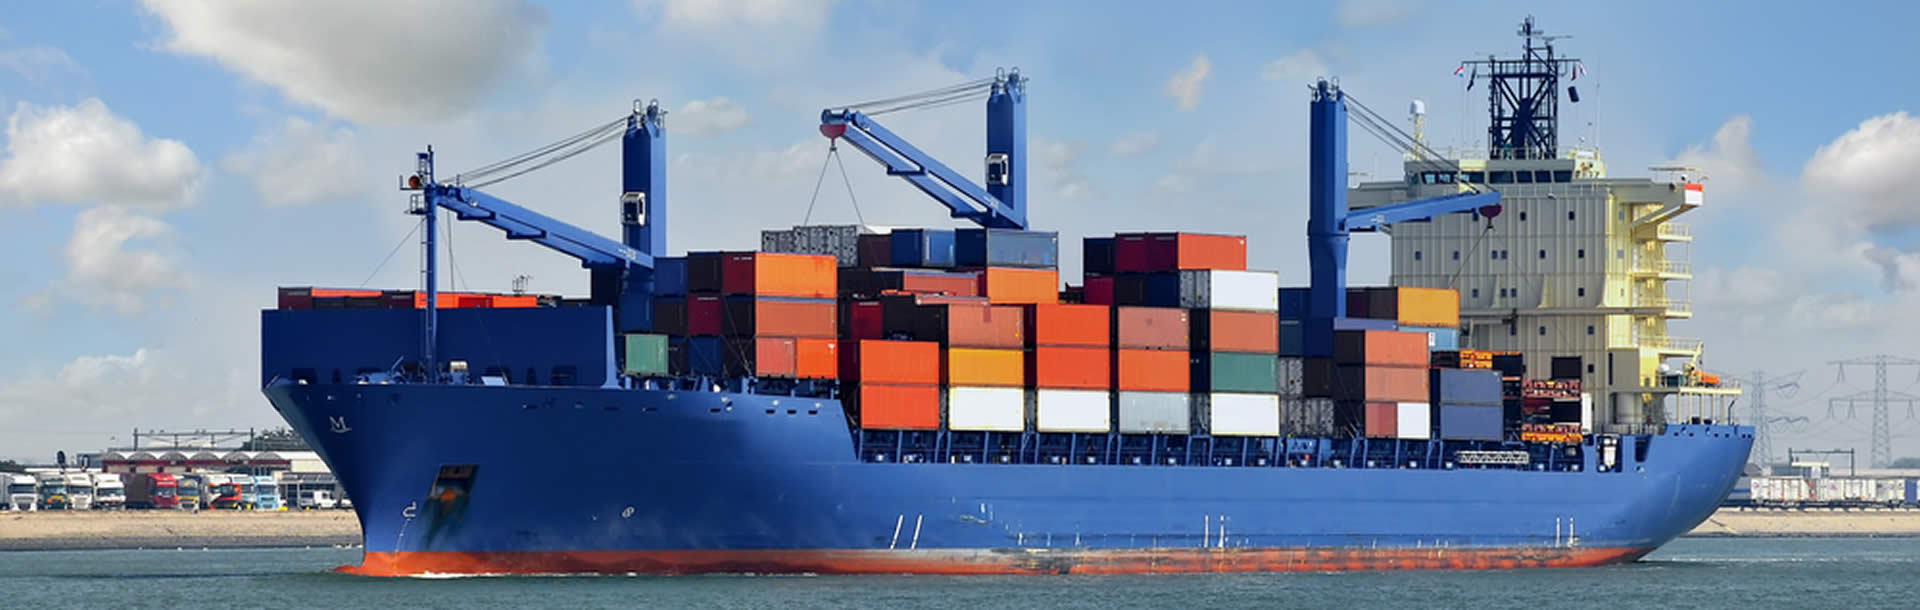 International trade and supply chain management consultancy specialising in Customs, Excise and Air Cargo Security matters